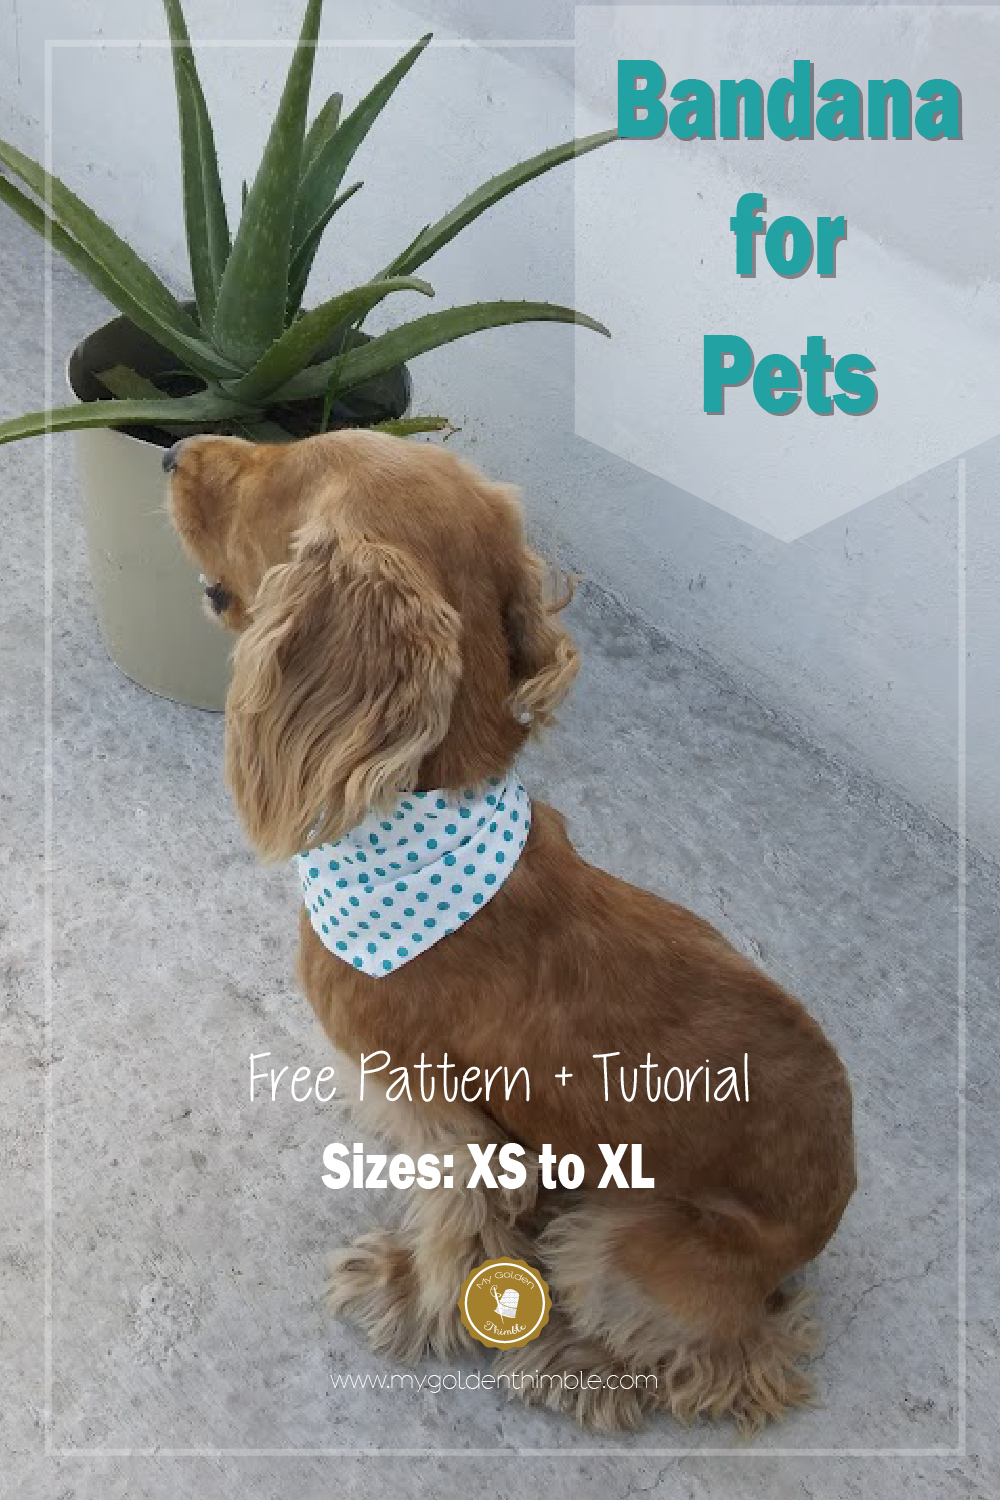 Free Dog Bandana Pattern Diy: For All Sizes! | Crafty | Sewing - Free Printable Sewing Patterns For Dog Clothes